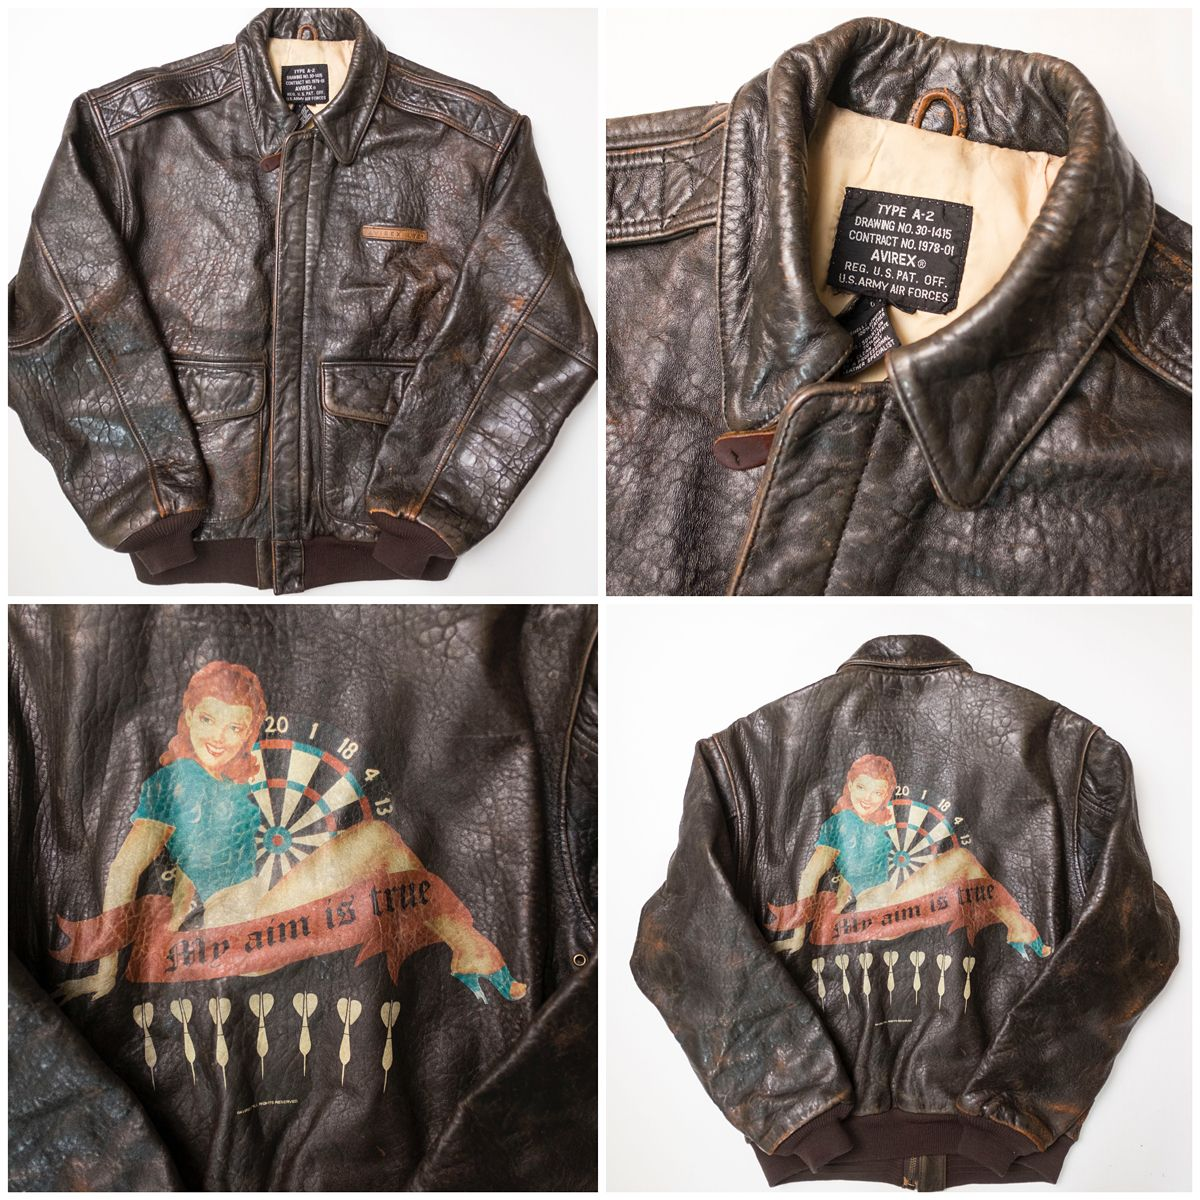 Vintage A-2 Leather Brown AVIREX Patch Patches Retro Girl Back Paint  Carrier Air Group Military Flight Bomber Jacket ( Size: S ) - Japan Lover  Me Store